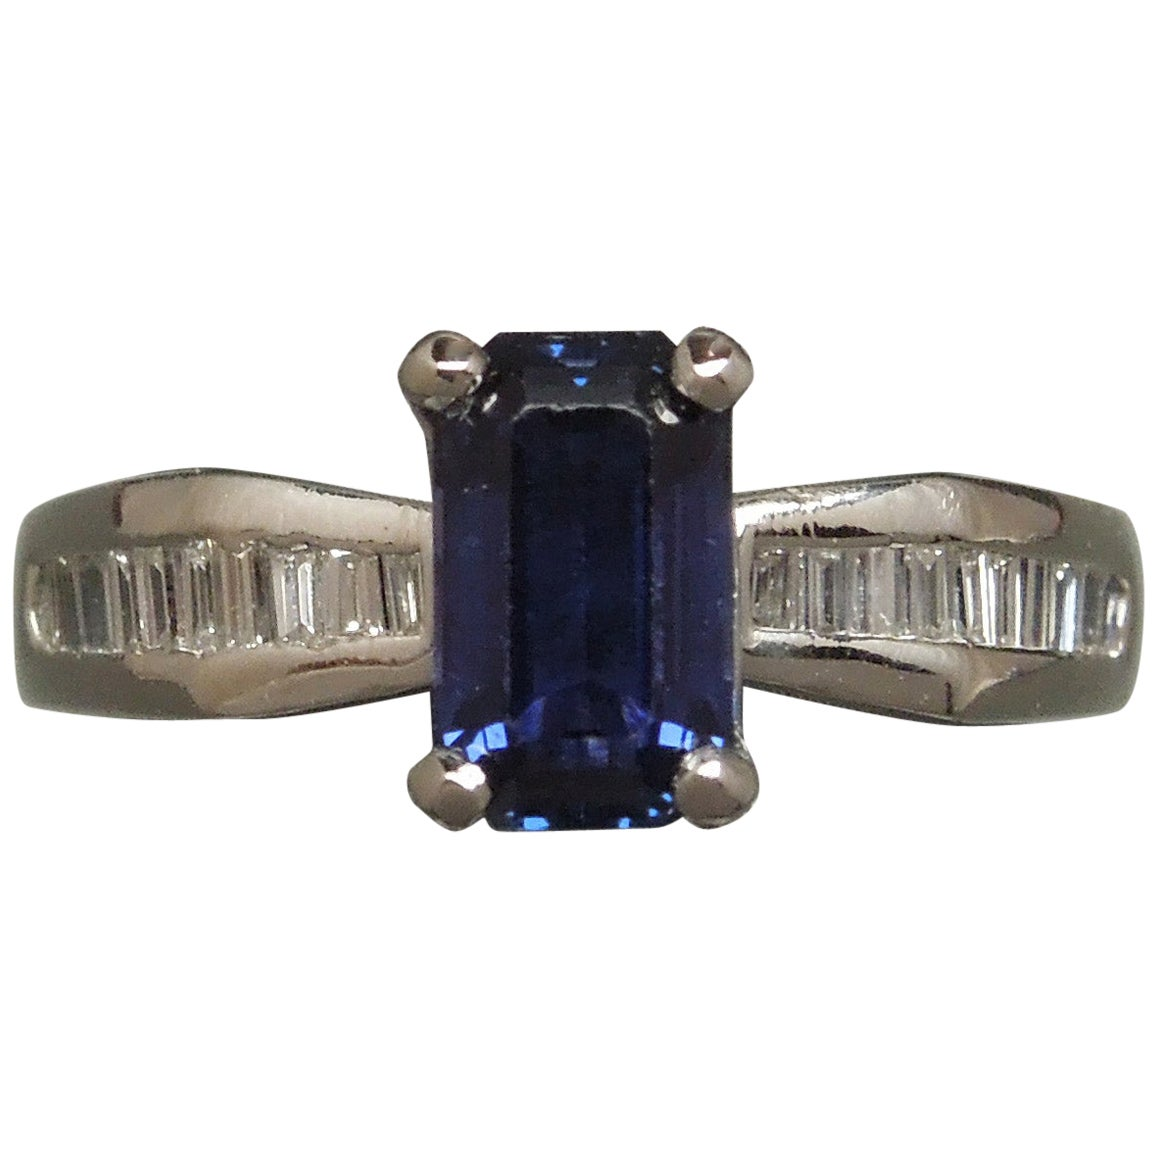 1.73 Carat Emerald Cut GIA Sapphire and Baguette Platinum Ring